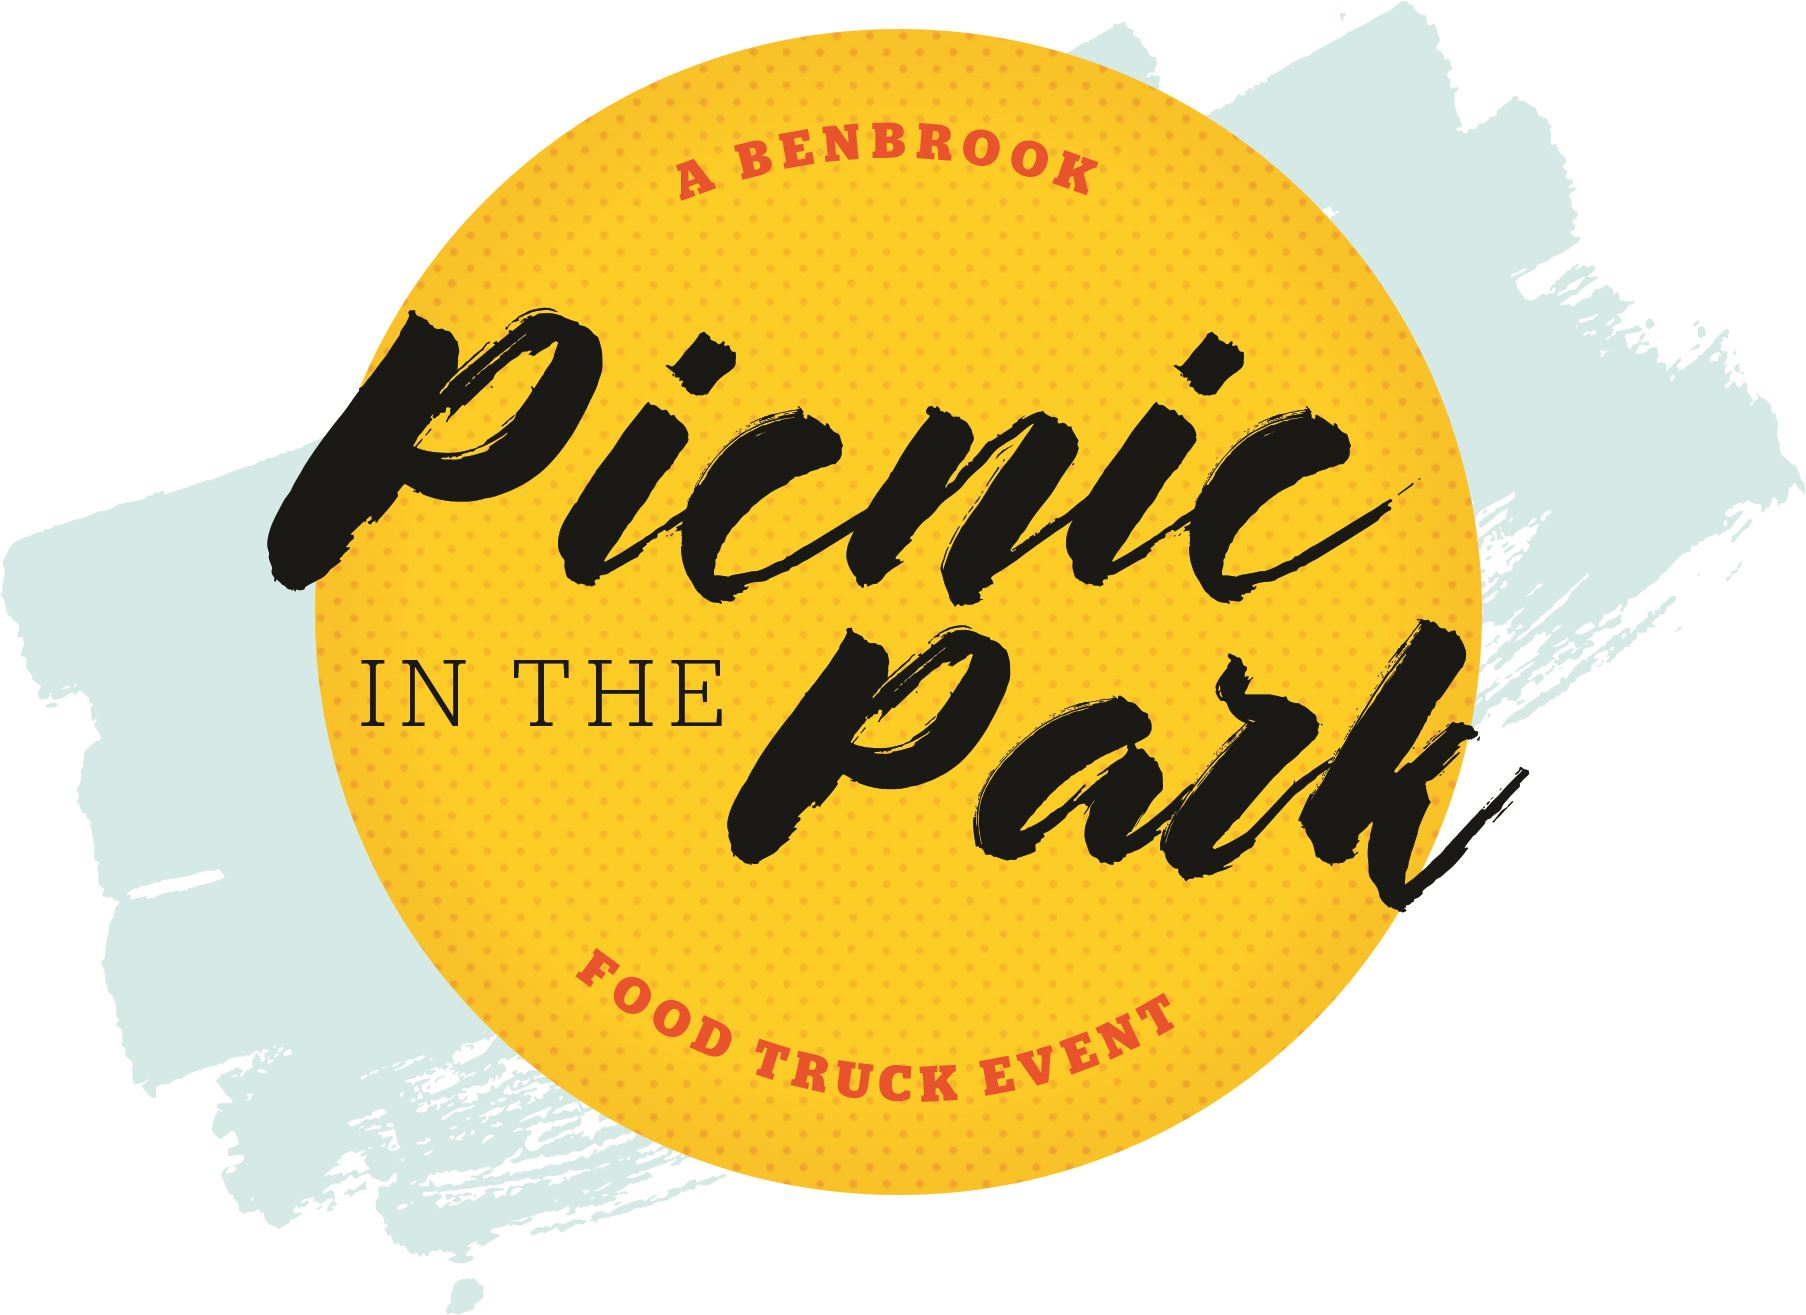 Picnic-in-the-park-logo